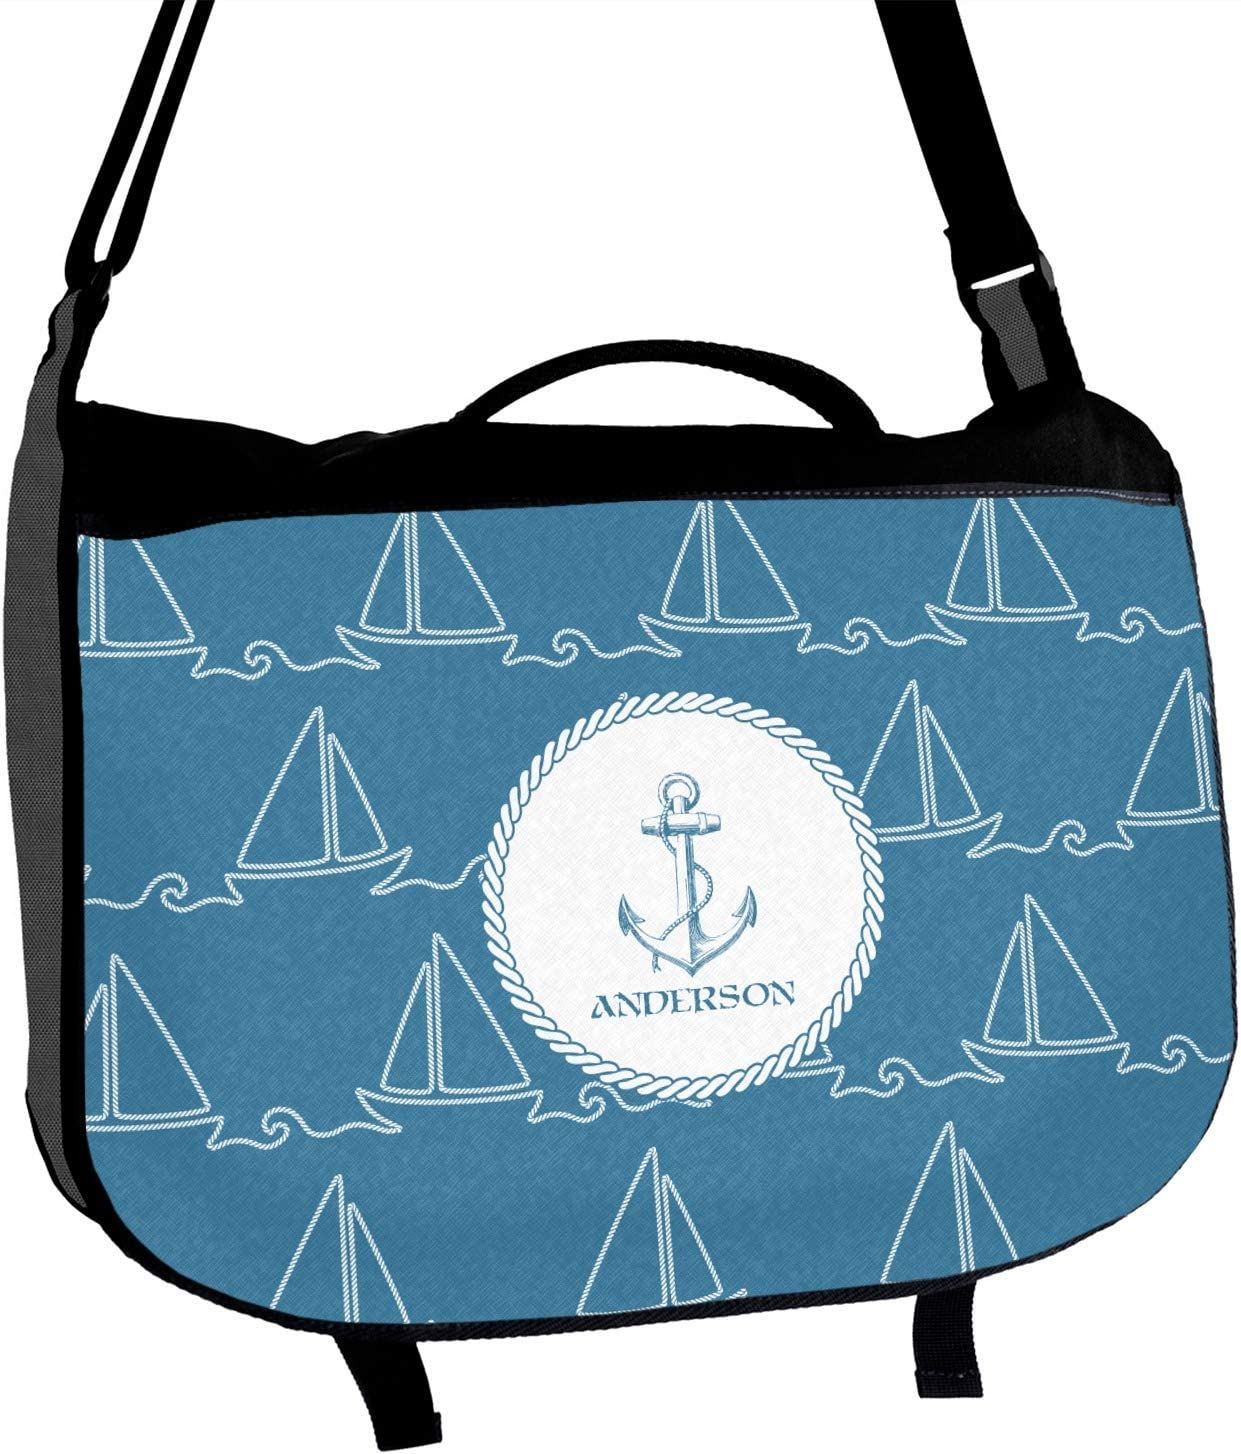 Rope Sail Boats Messenger Bag Personalized